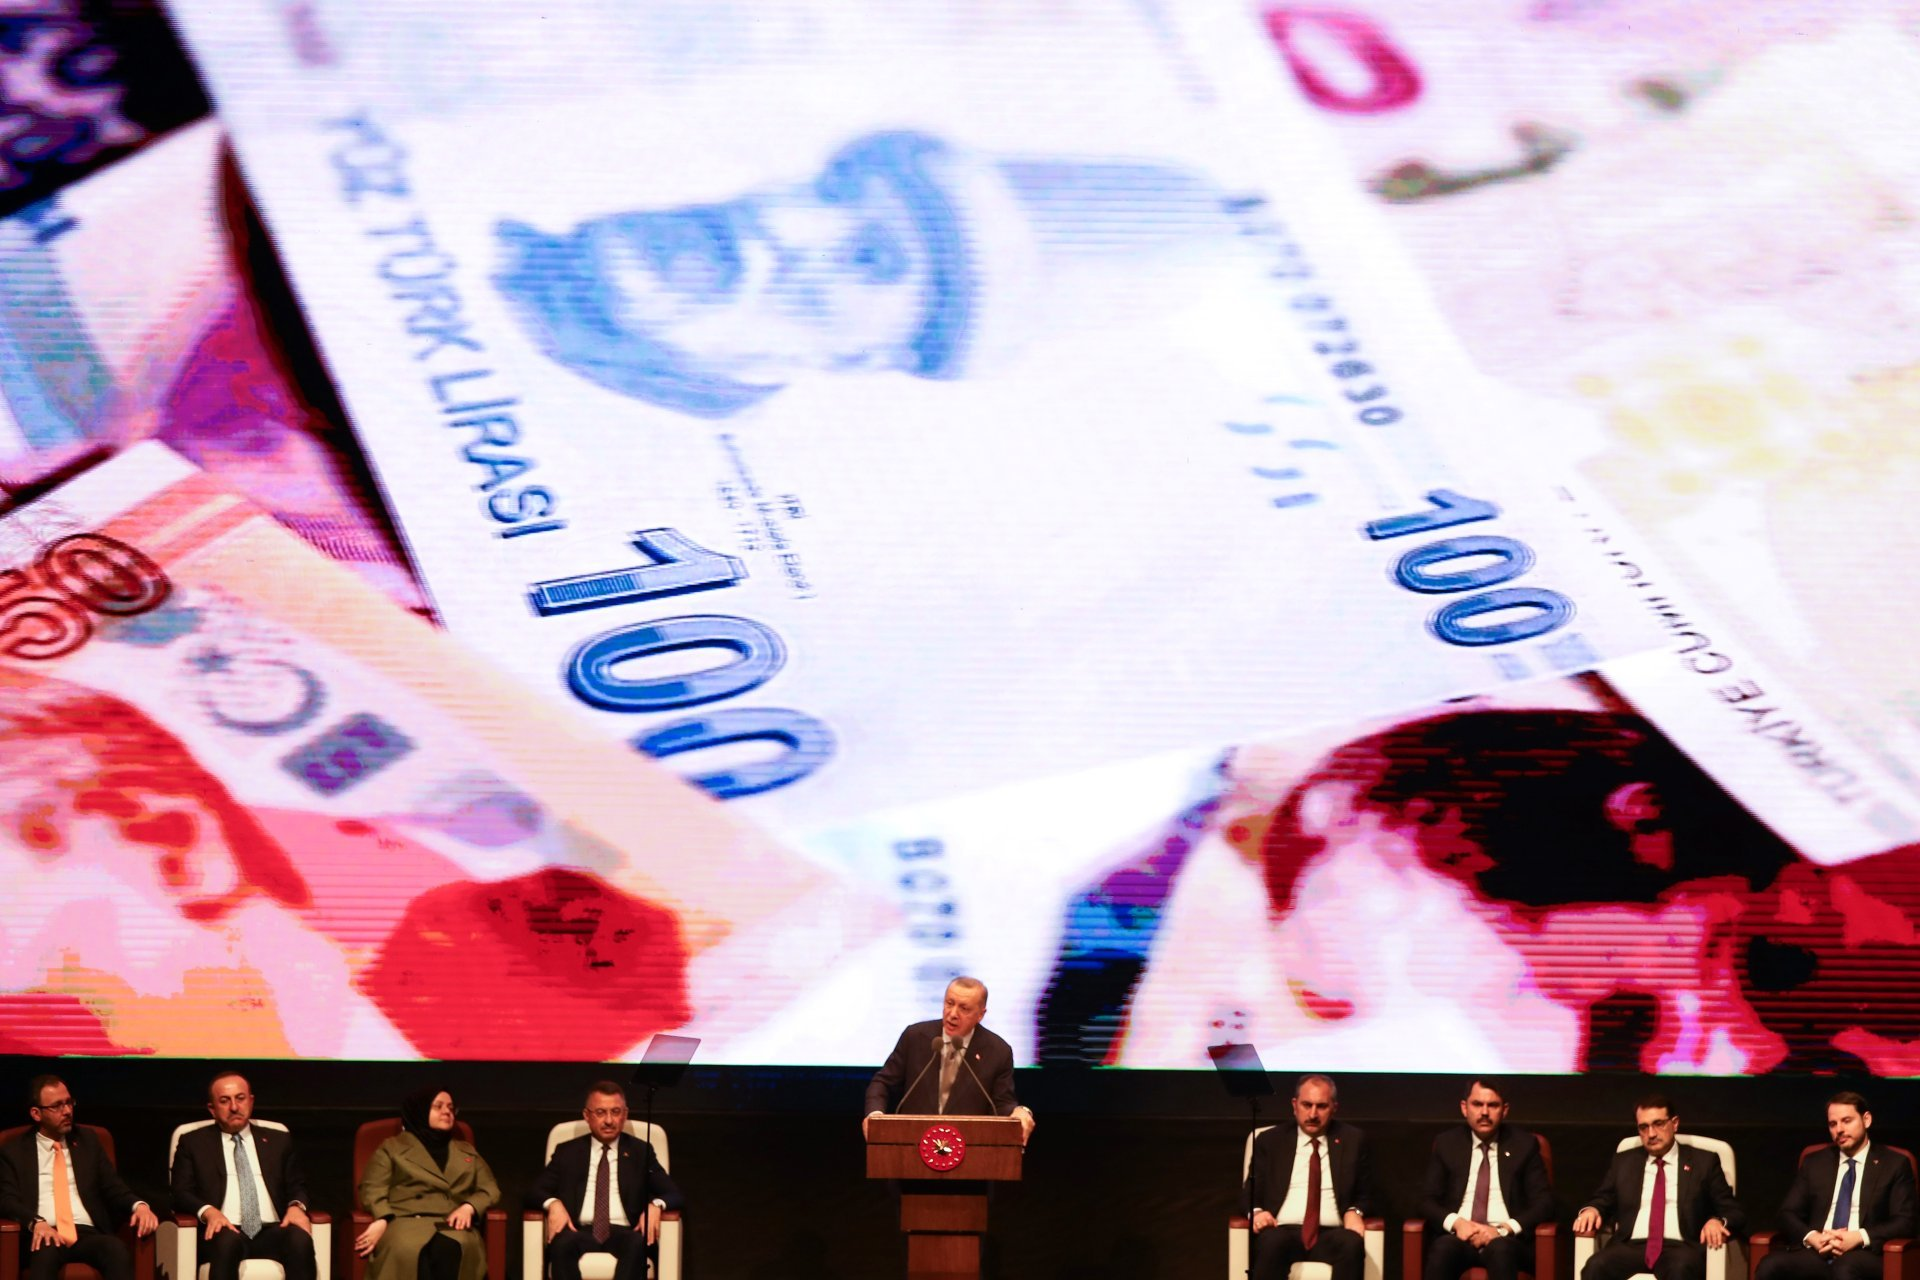 Turkish President Recep Tayyip Erdogan gestures as he delivers a speech on stage, with on the background banknotes of the Turkish lira (AFP)